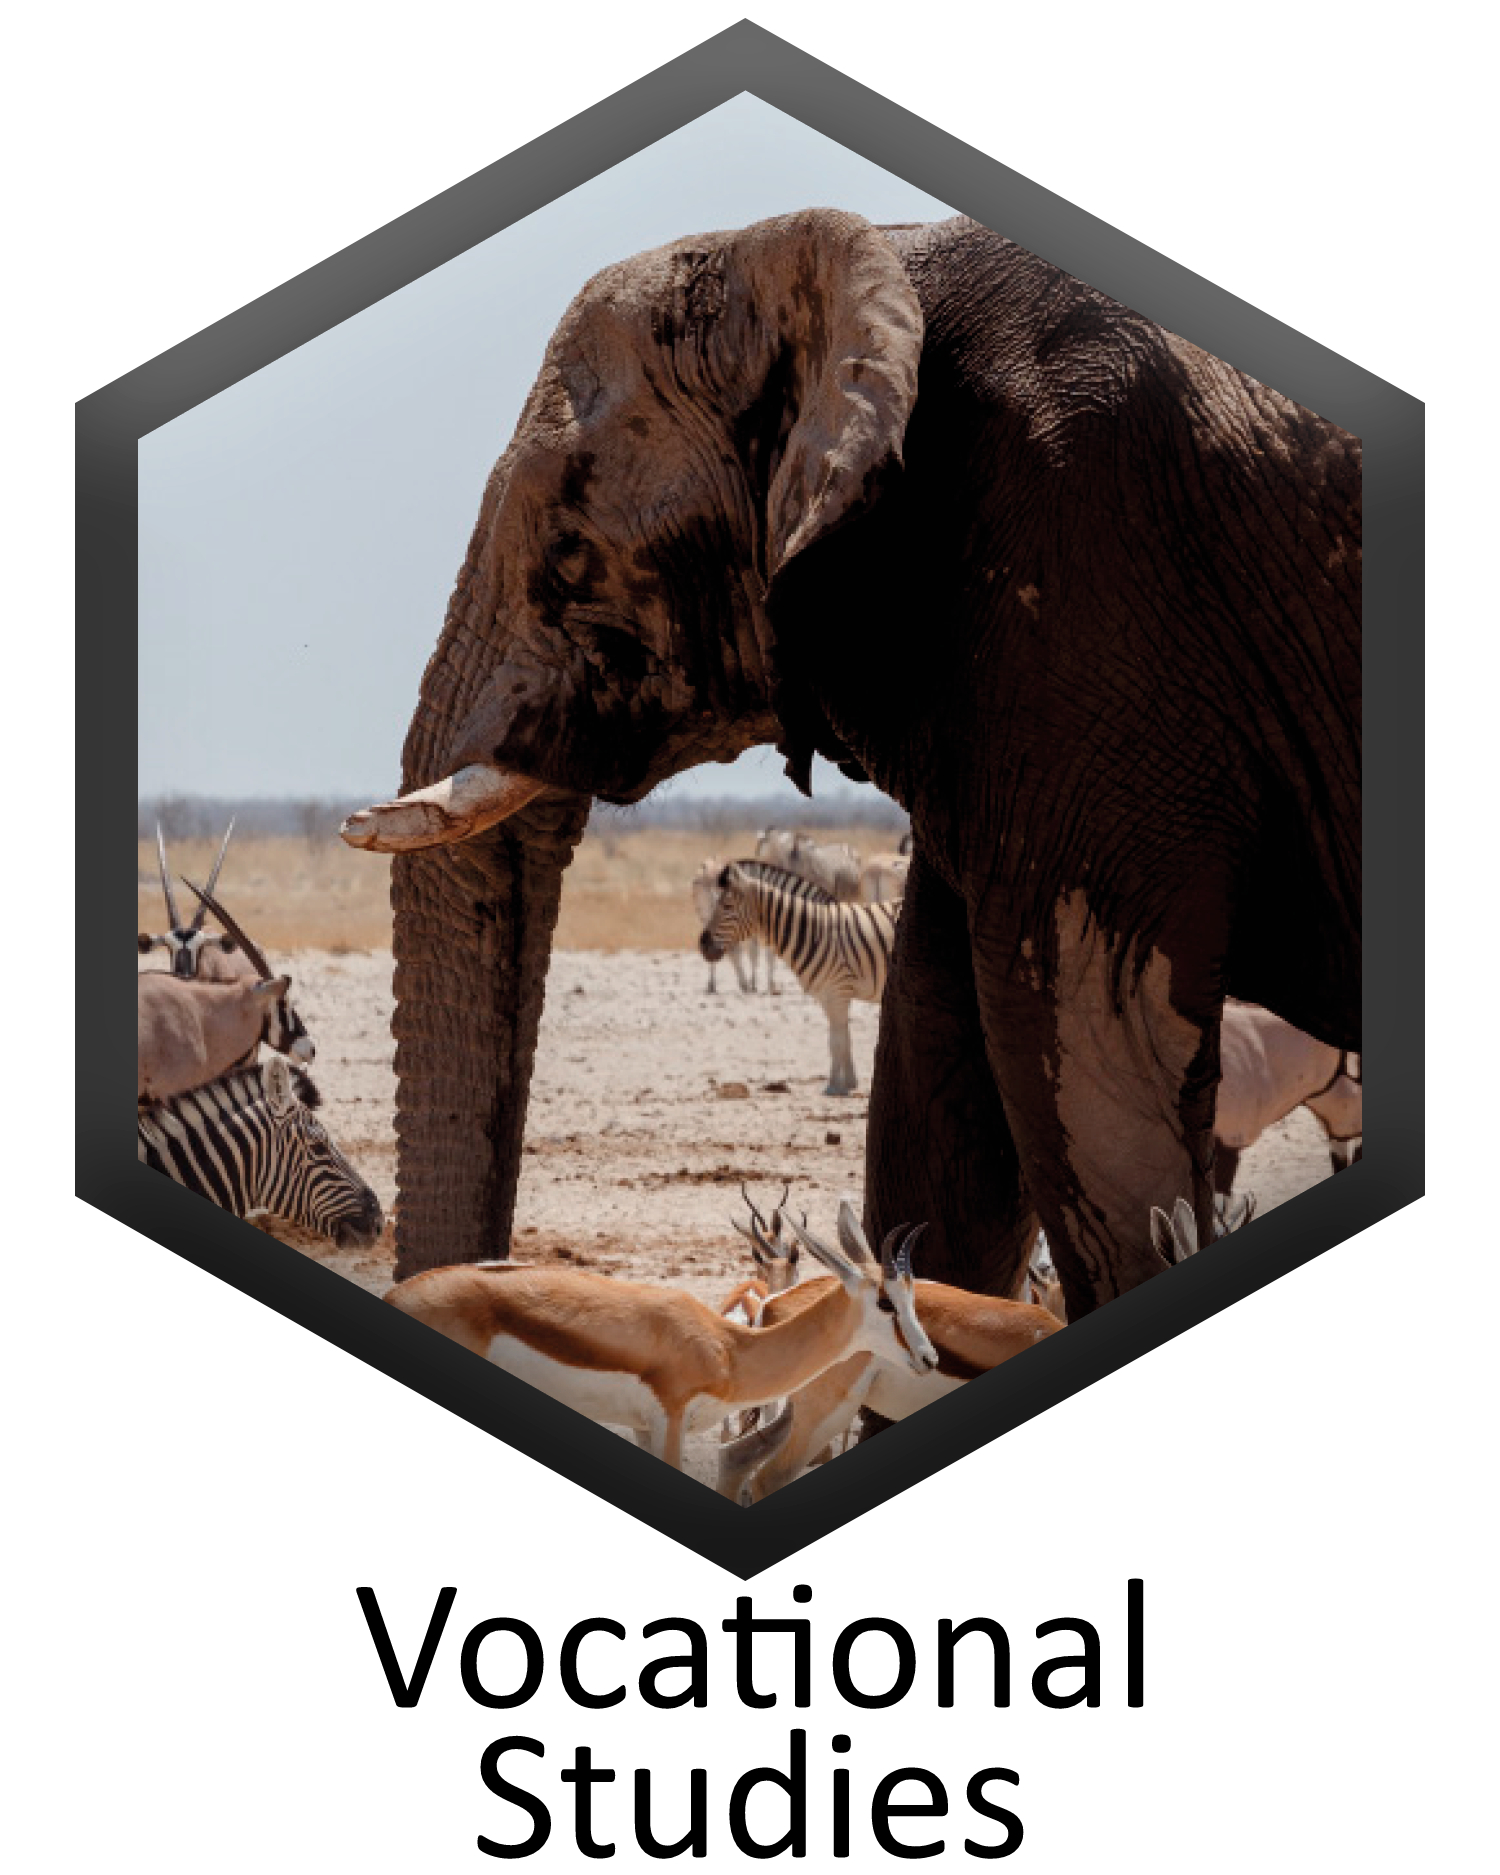 Vocatioonal Studies specification